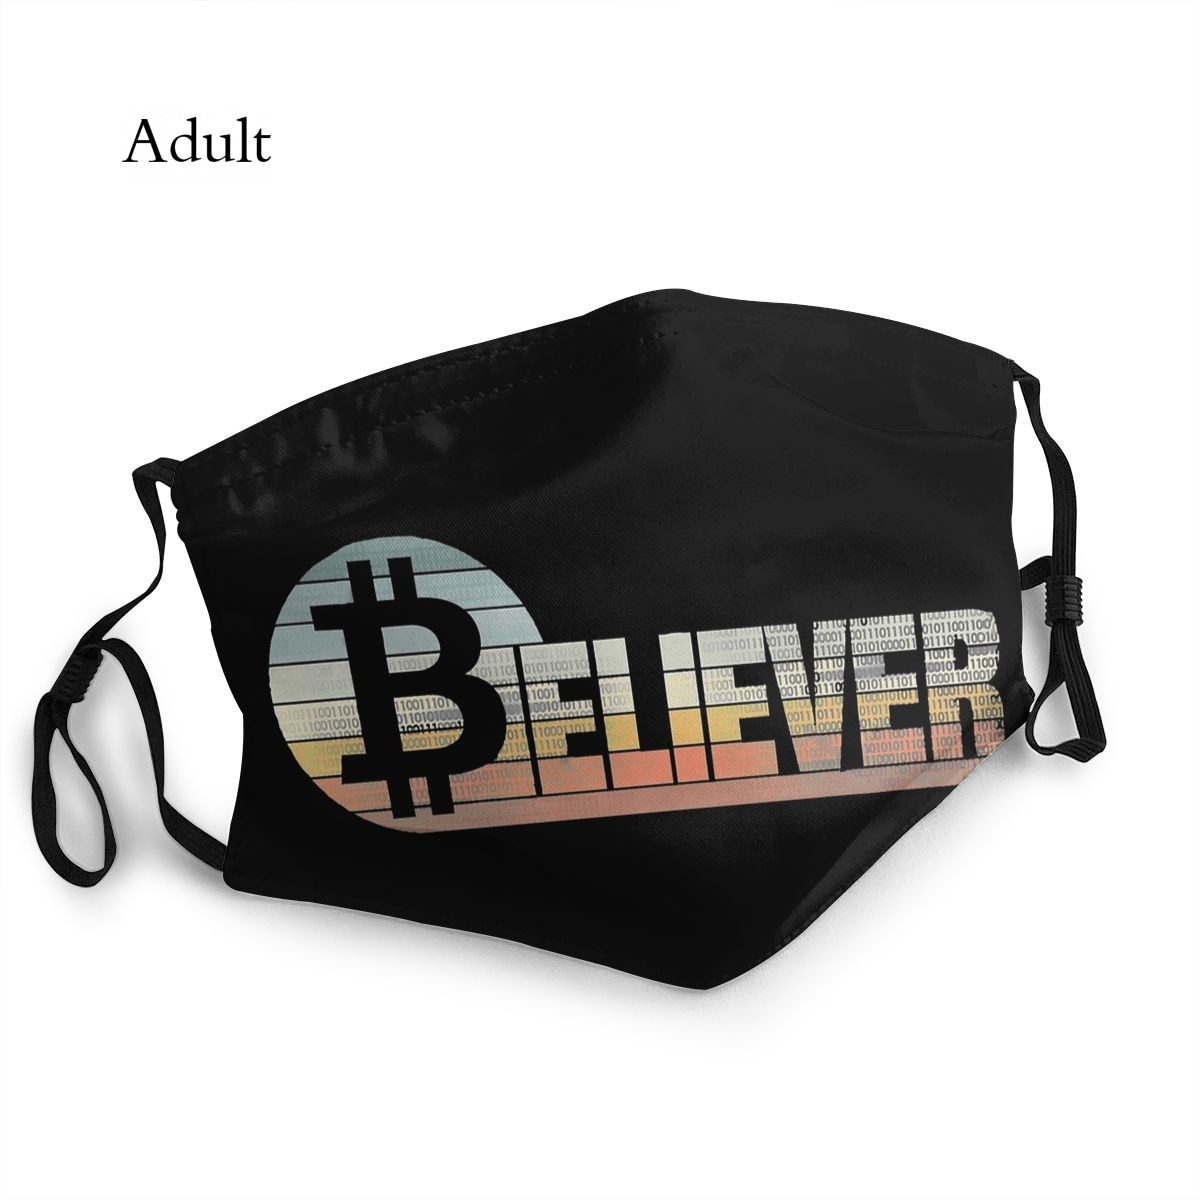 Believer Crypto Bitcoin Cryptocurrency Art Dust Proof Reusable Mascarillas Adult Mask Muffle